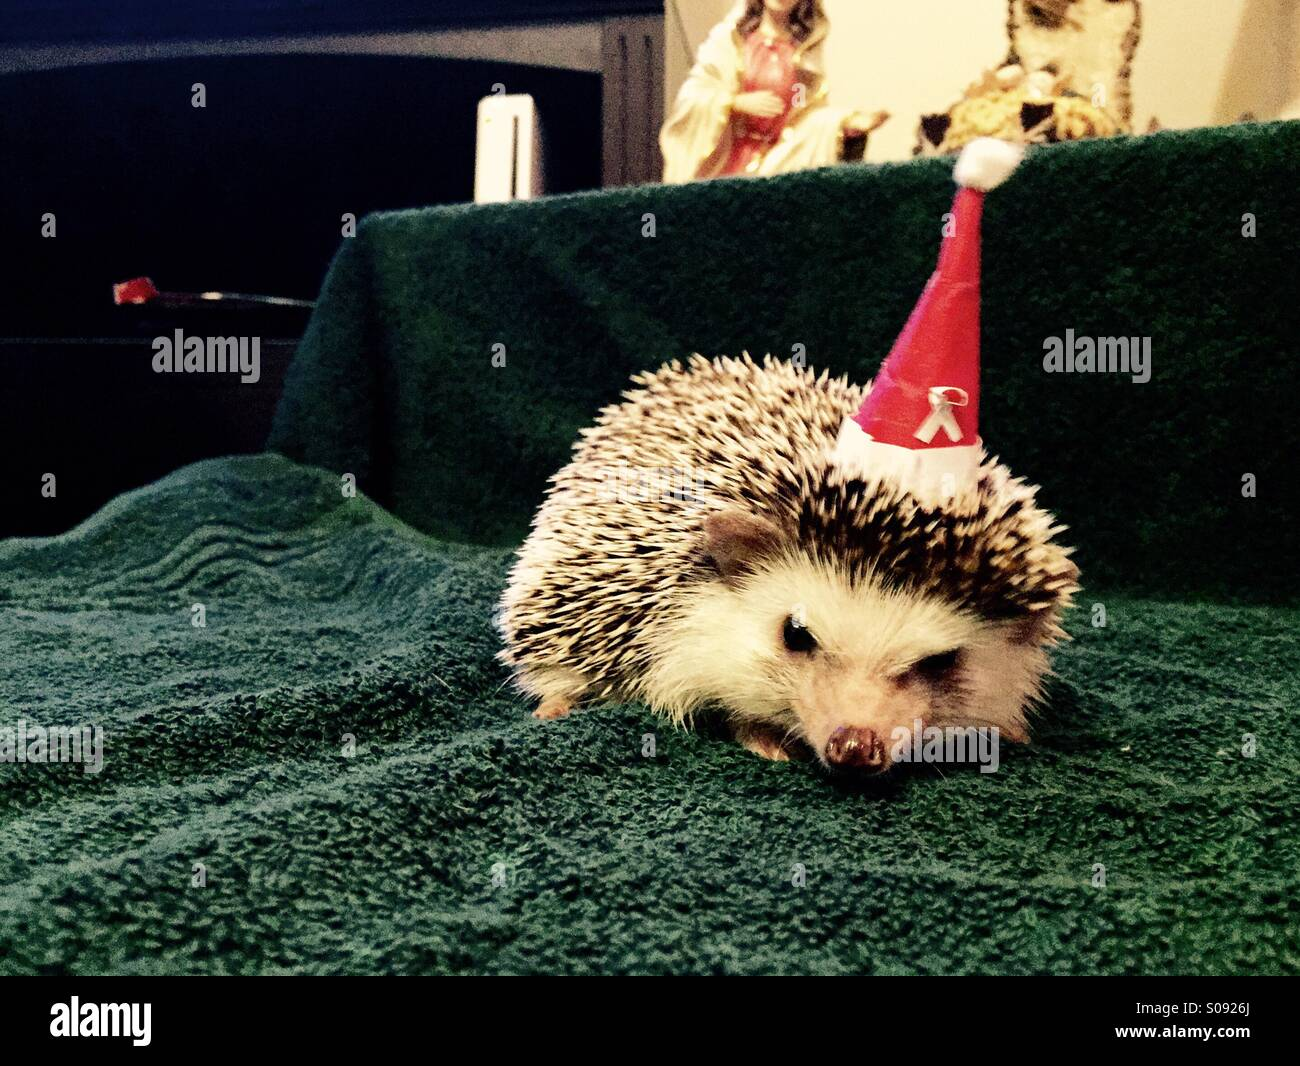 Hedgehog wearing small Christmas hat - Stock Image